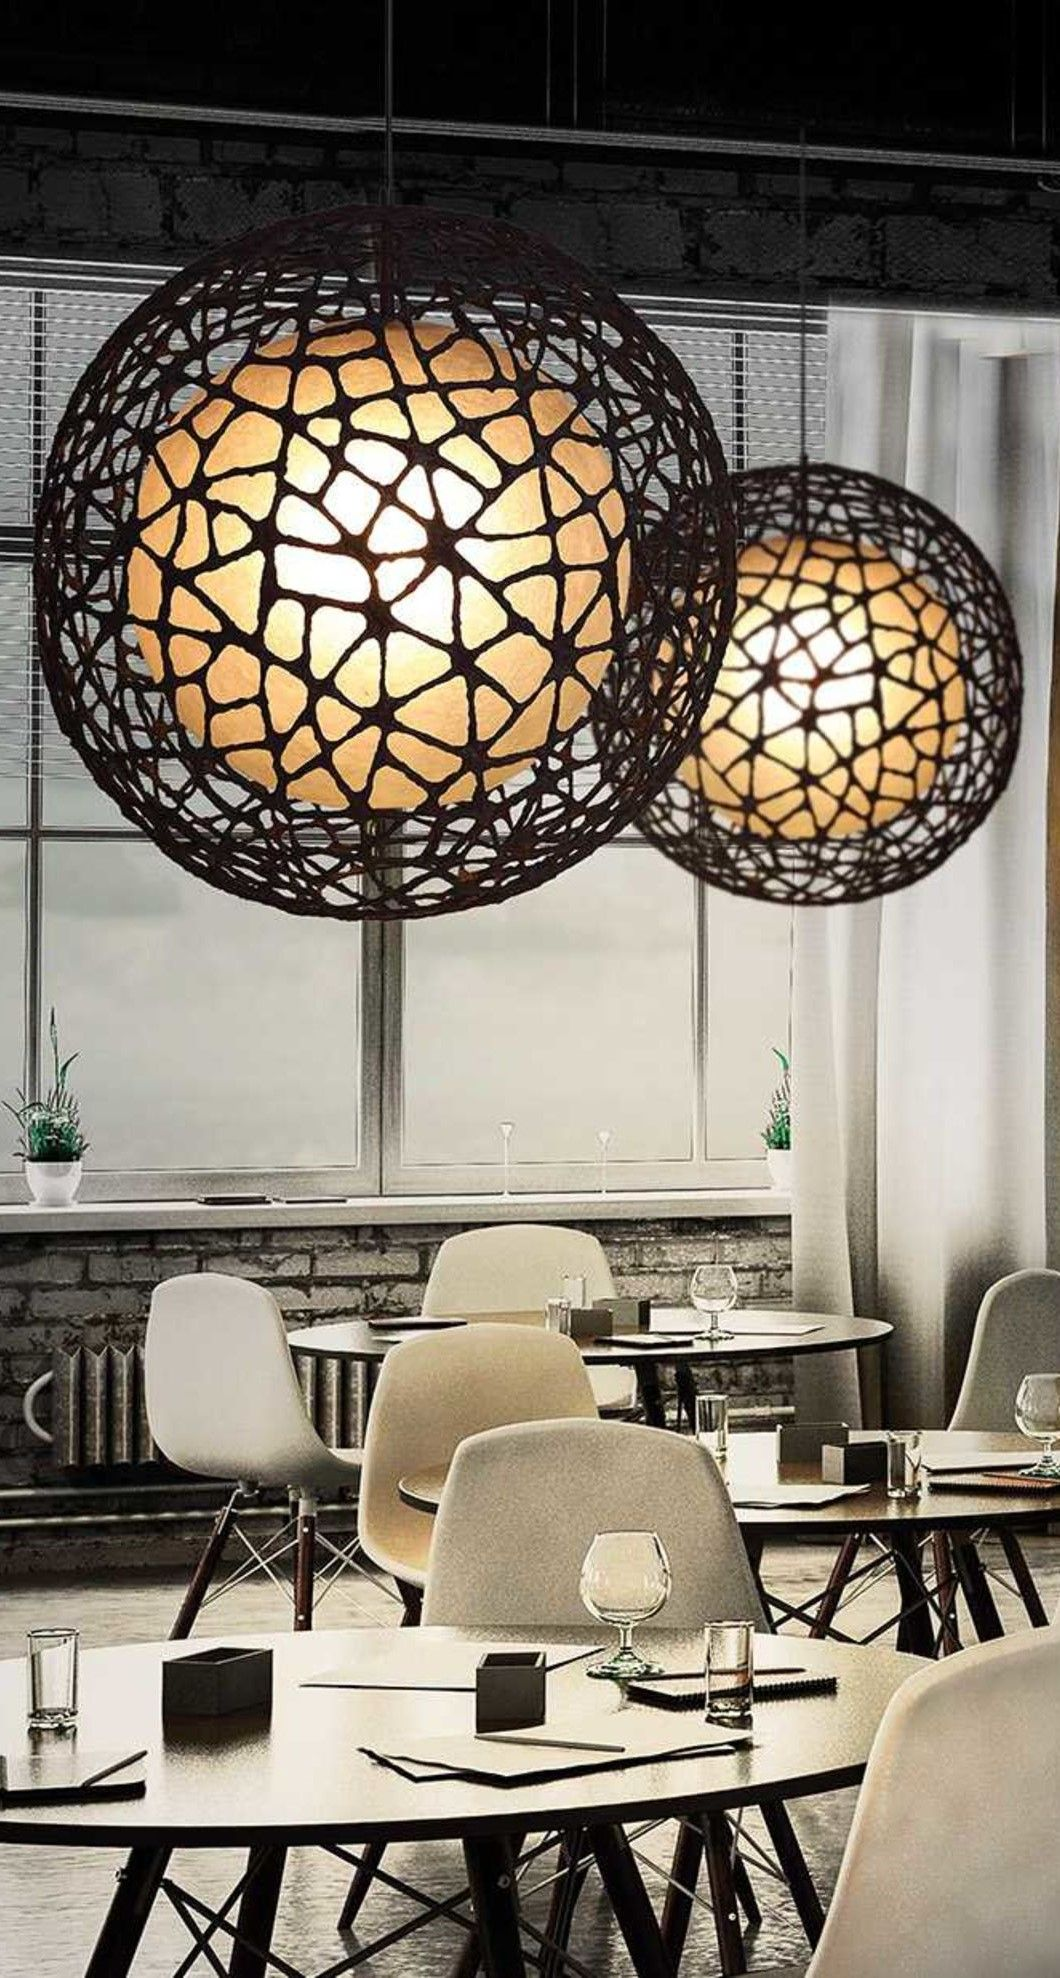 The C U Me Collection Round Hanging Lamp Features Charming Beauty Of Woven Wire